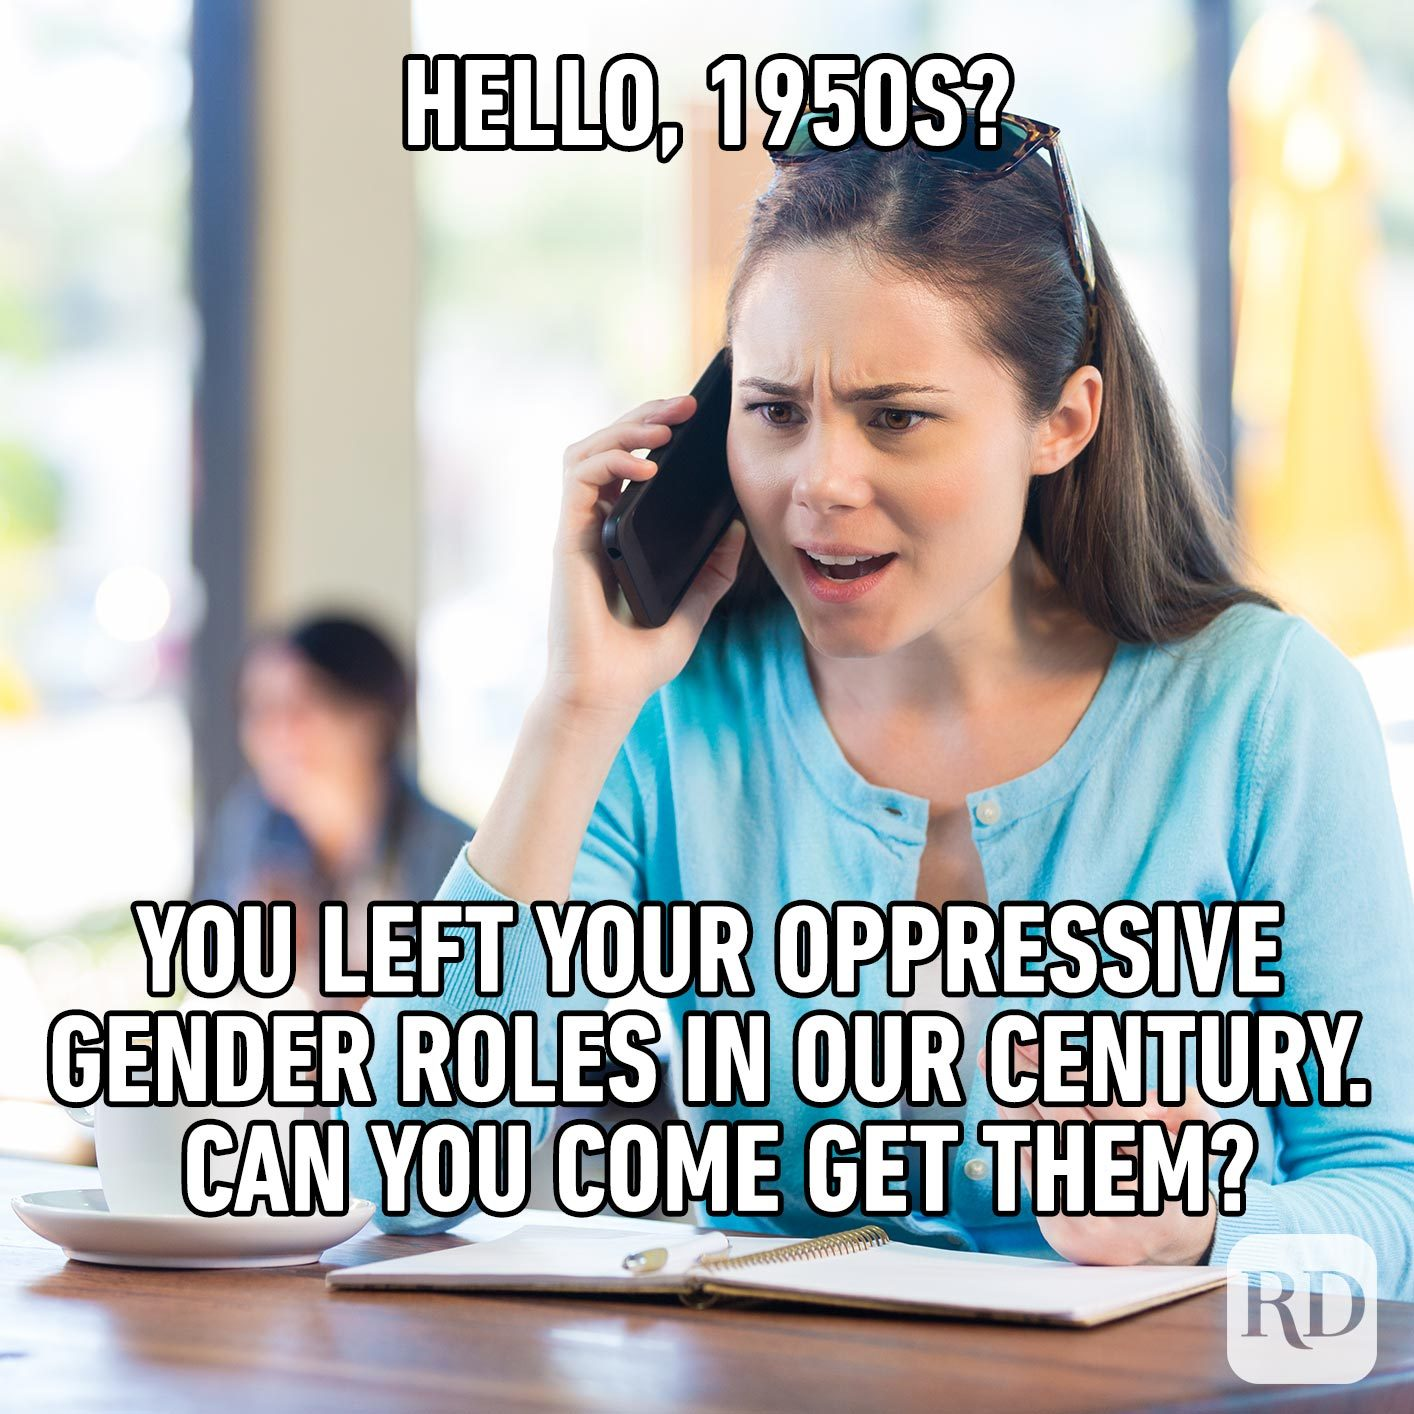 Woman angry on the phone. Meme text: Hello, 1950s? You left your oppressive gender roles in our century. Can you come get them?